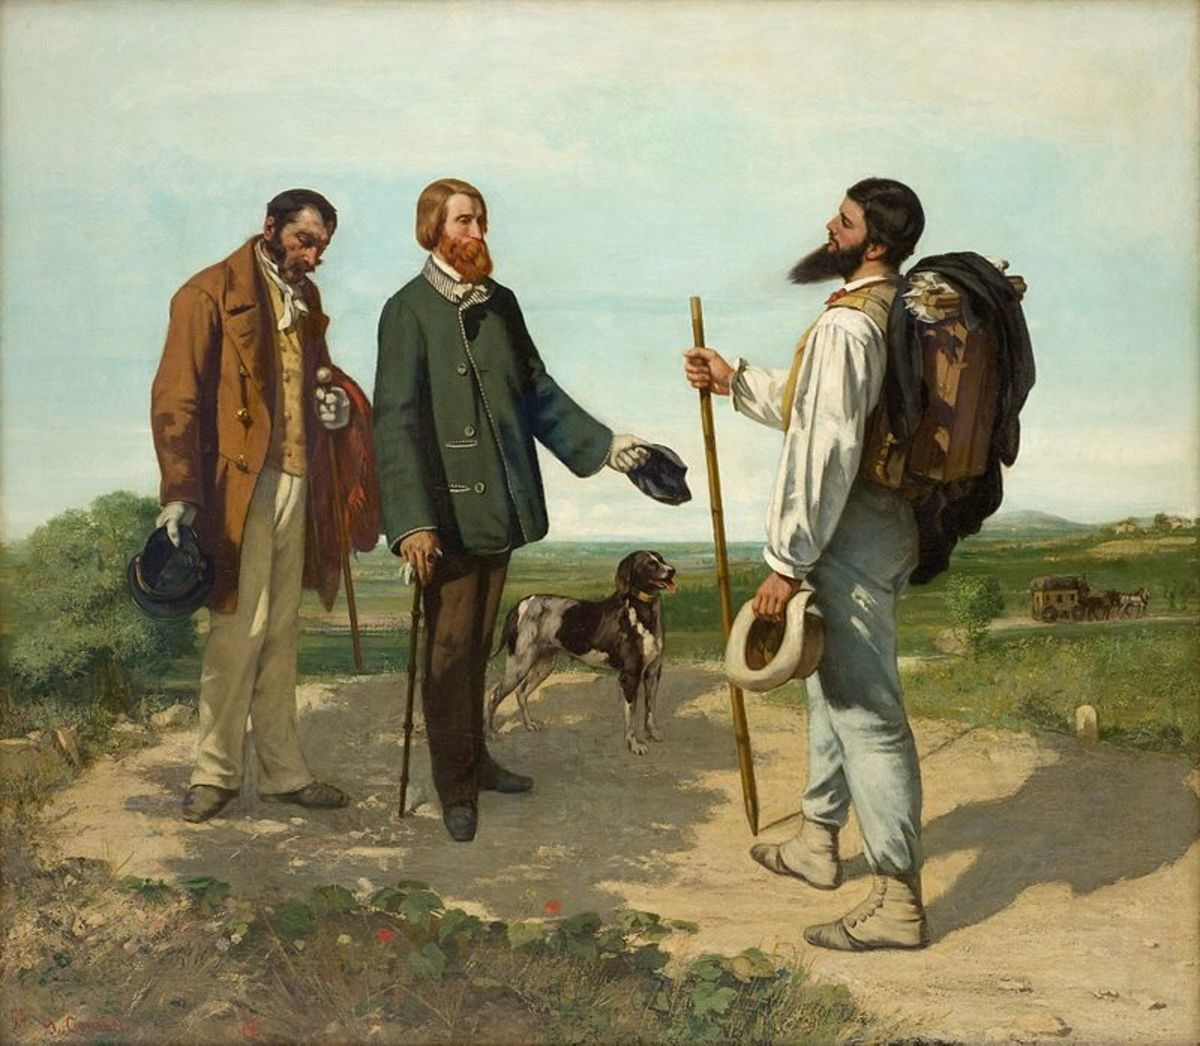 romanticism-social-reform-in-an-emerging-society